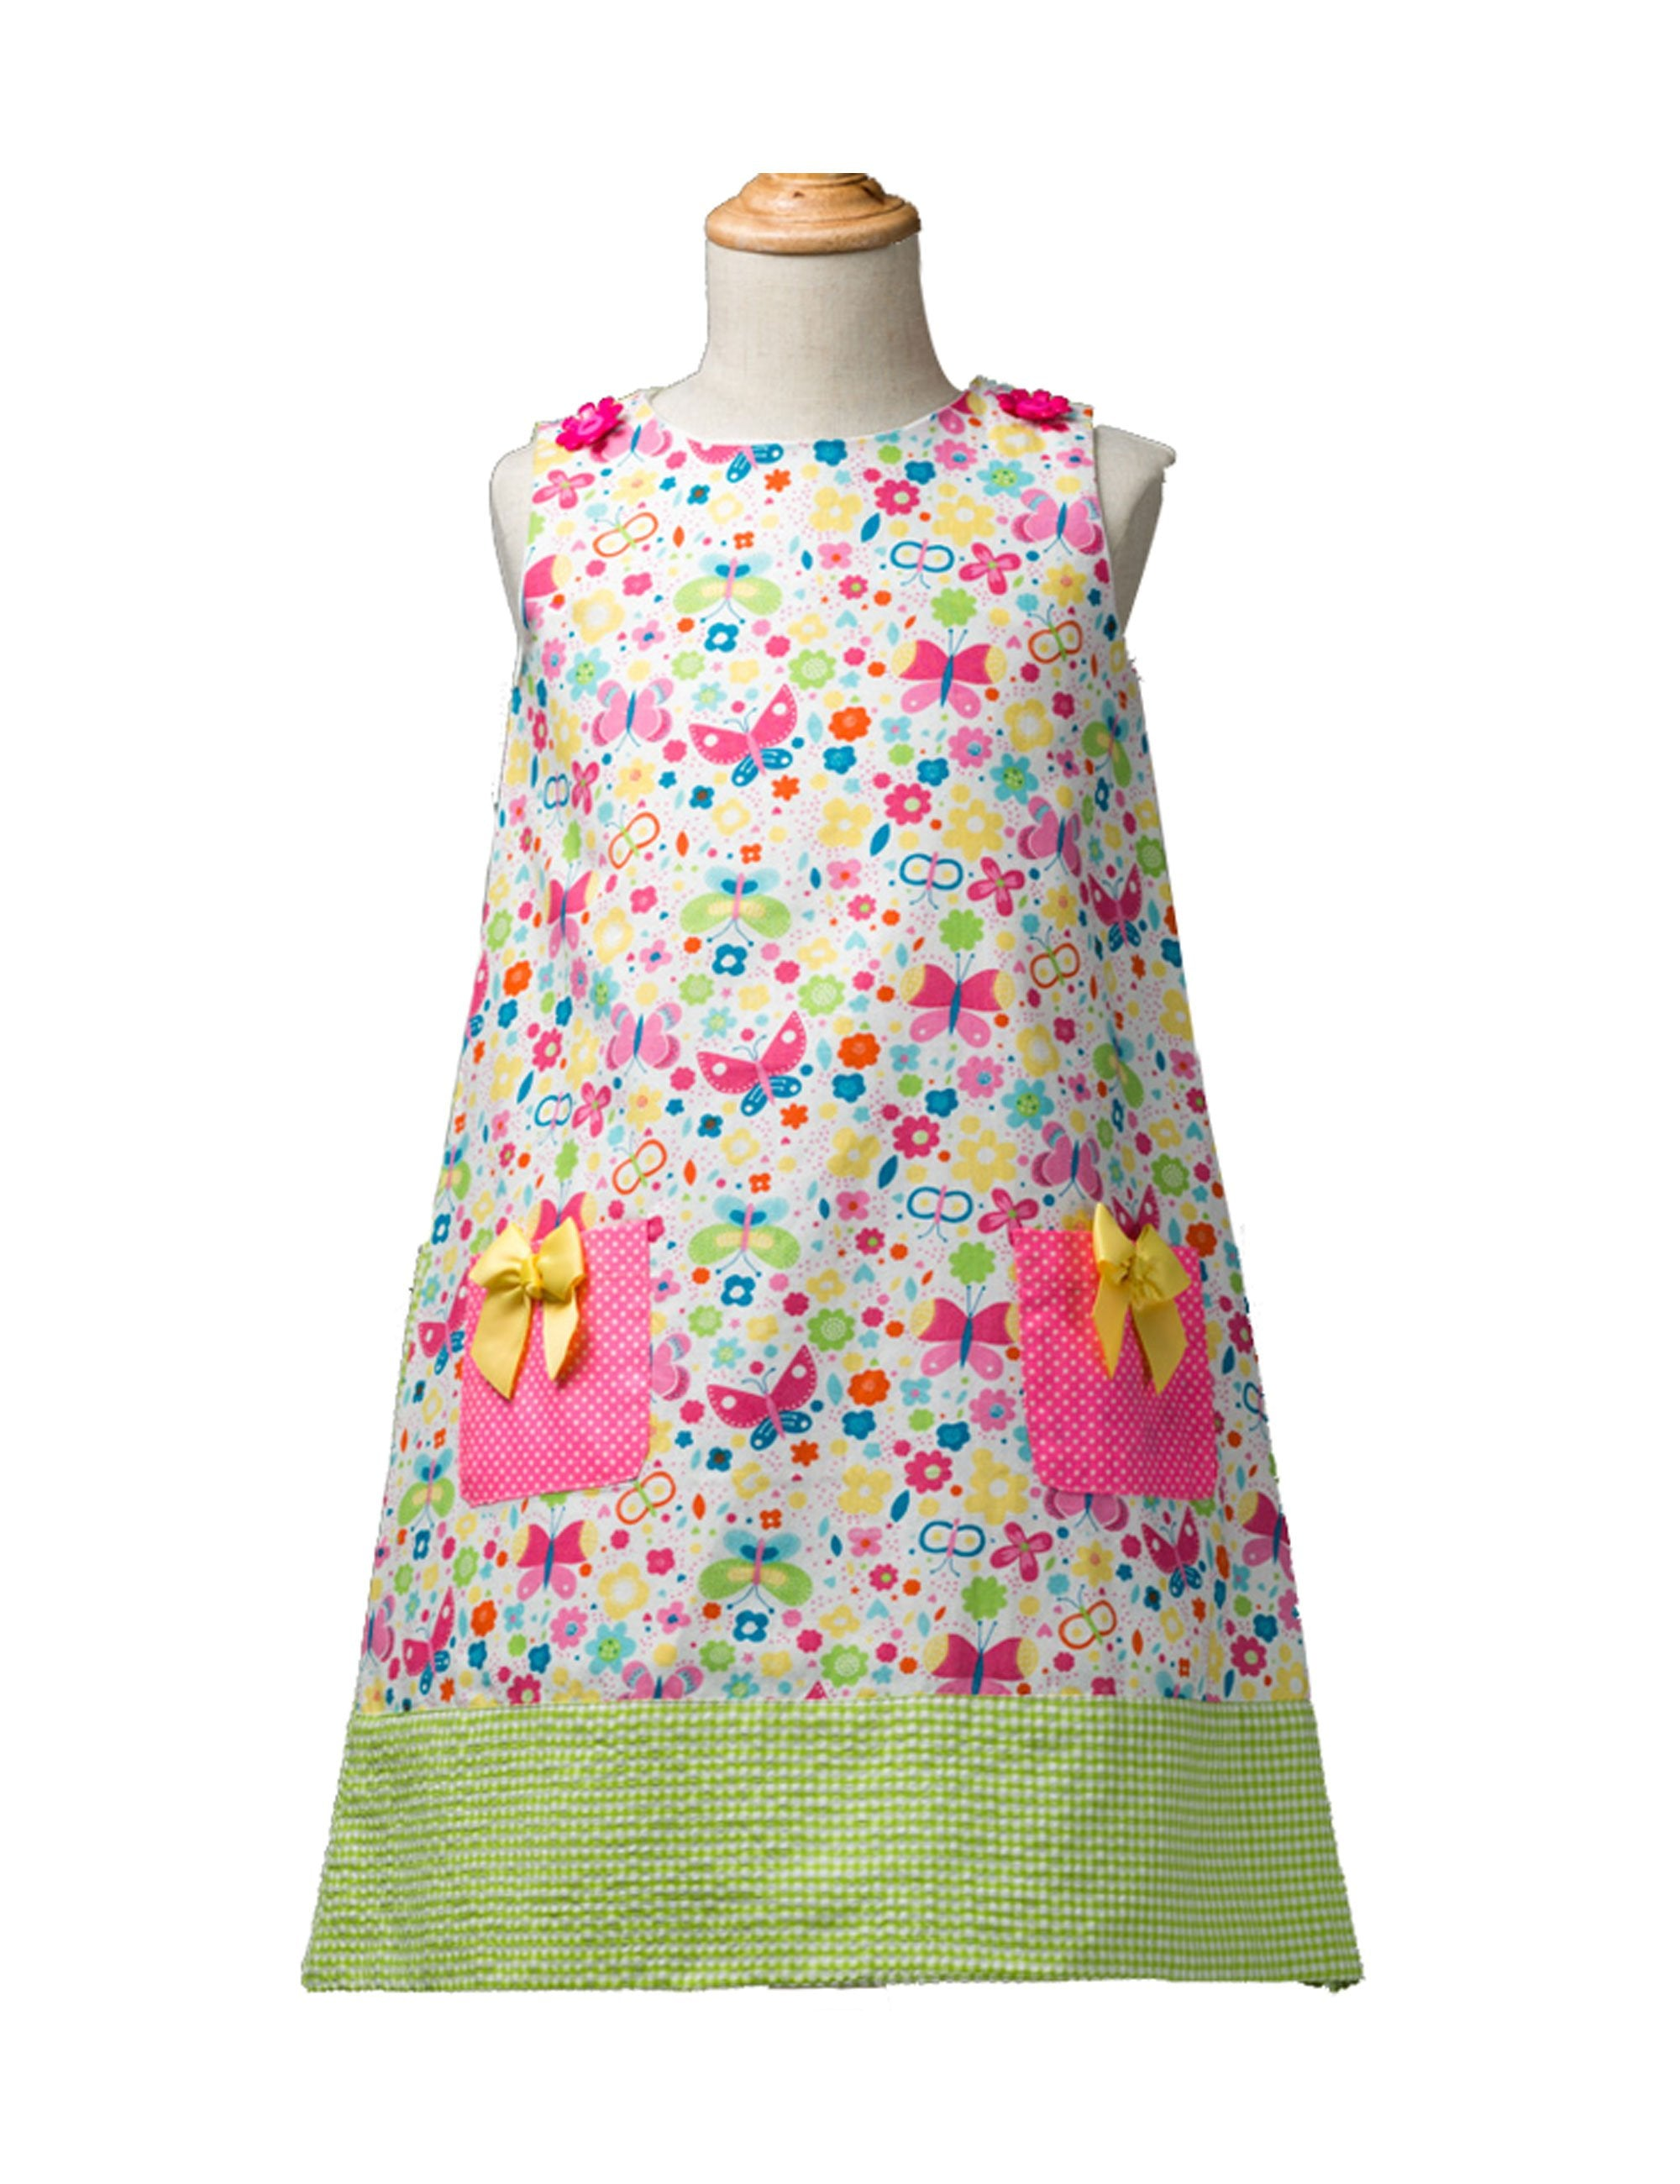 Butterfly Print Dress in Pink Colour for Girls